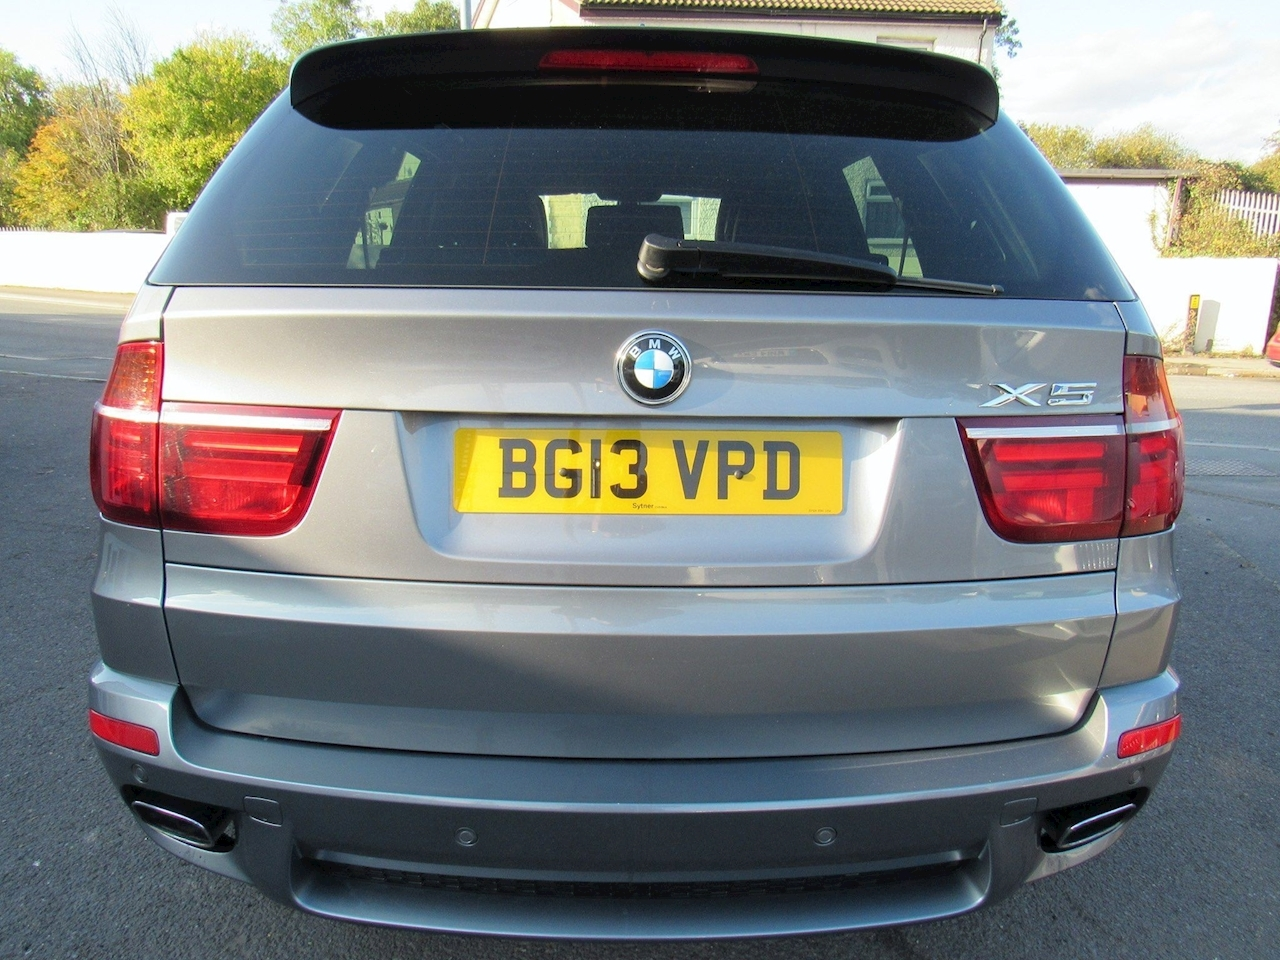 BMW X5 Xdrive30d M Sport Estate 3.0 Automatic Diesel